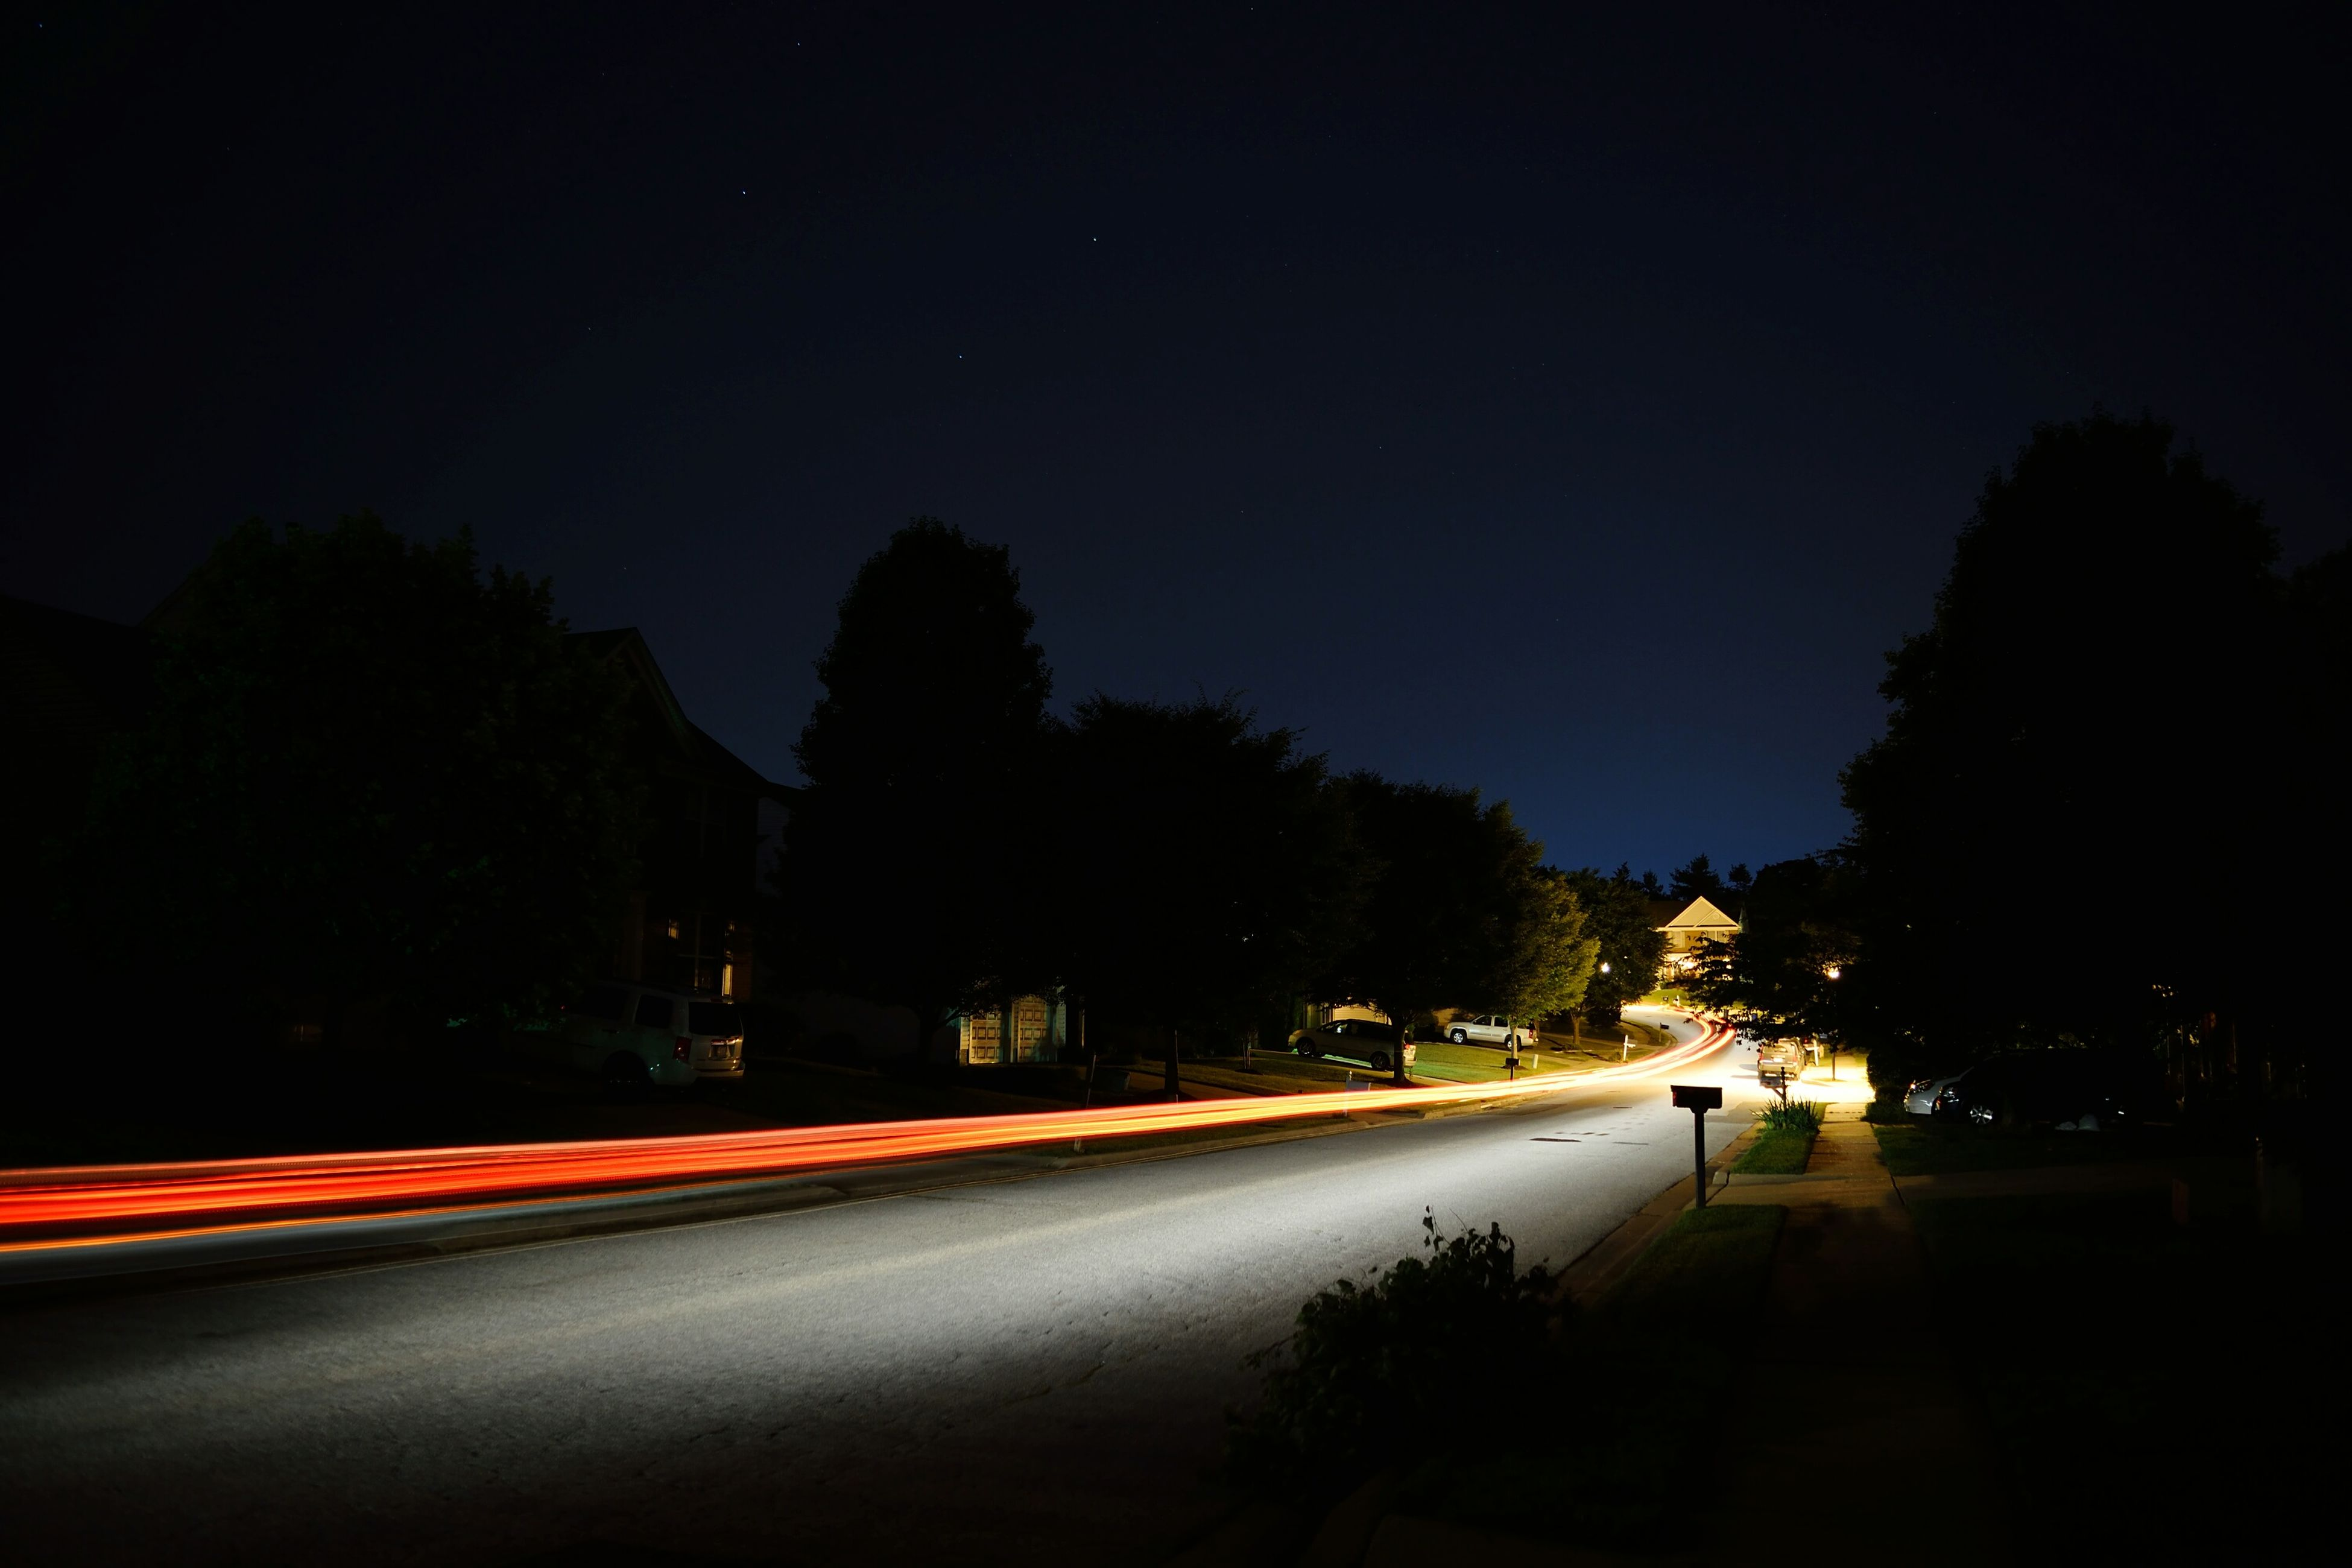 transportation, night, road, illuminated, street, the way forward, light trail, road marking, tree, long exposure, car, copy space, clear sky, motion, speed, sky, land vehicle, blurred motion, on the move, outdoors